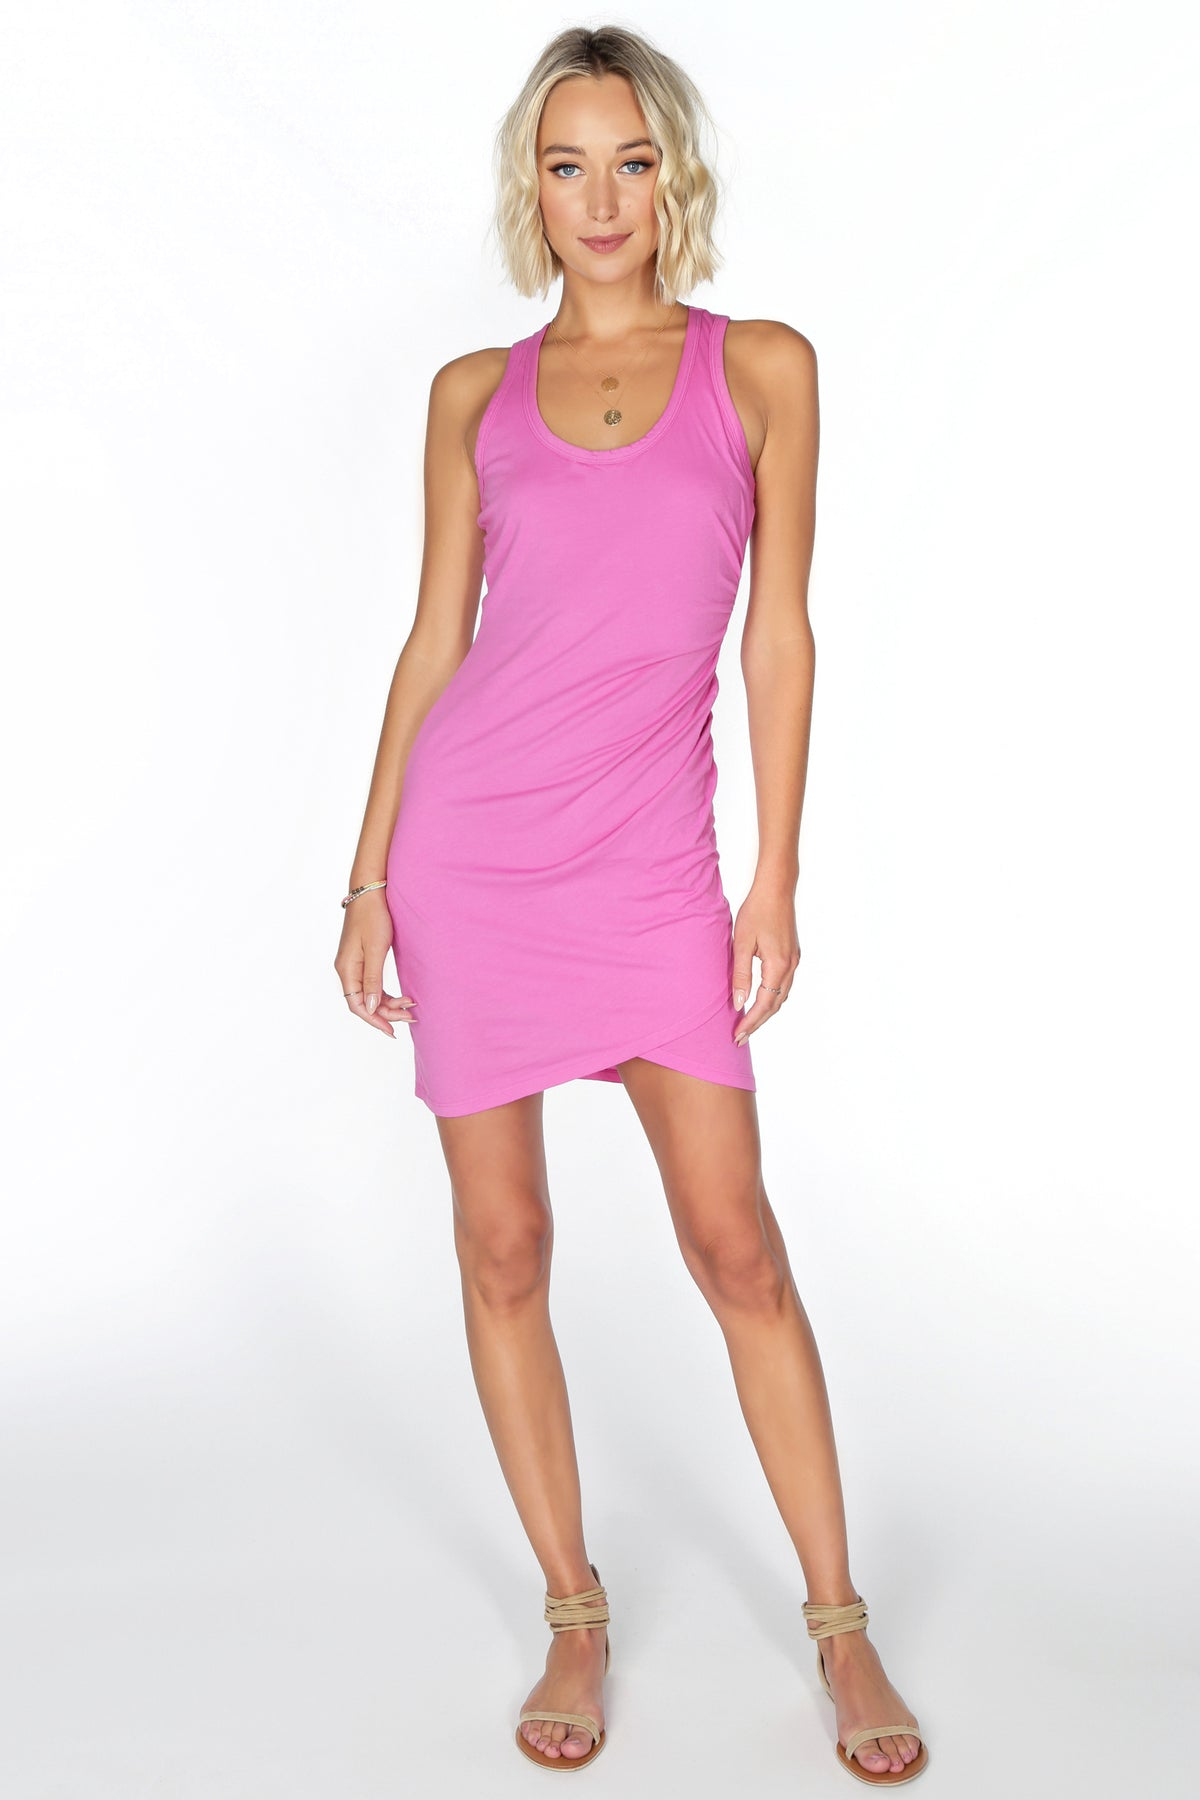 Surplice Tank Dress - bobi Los Angeles